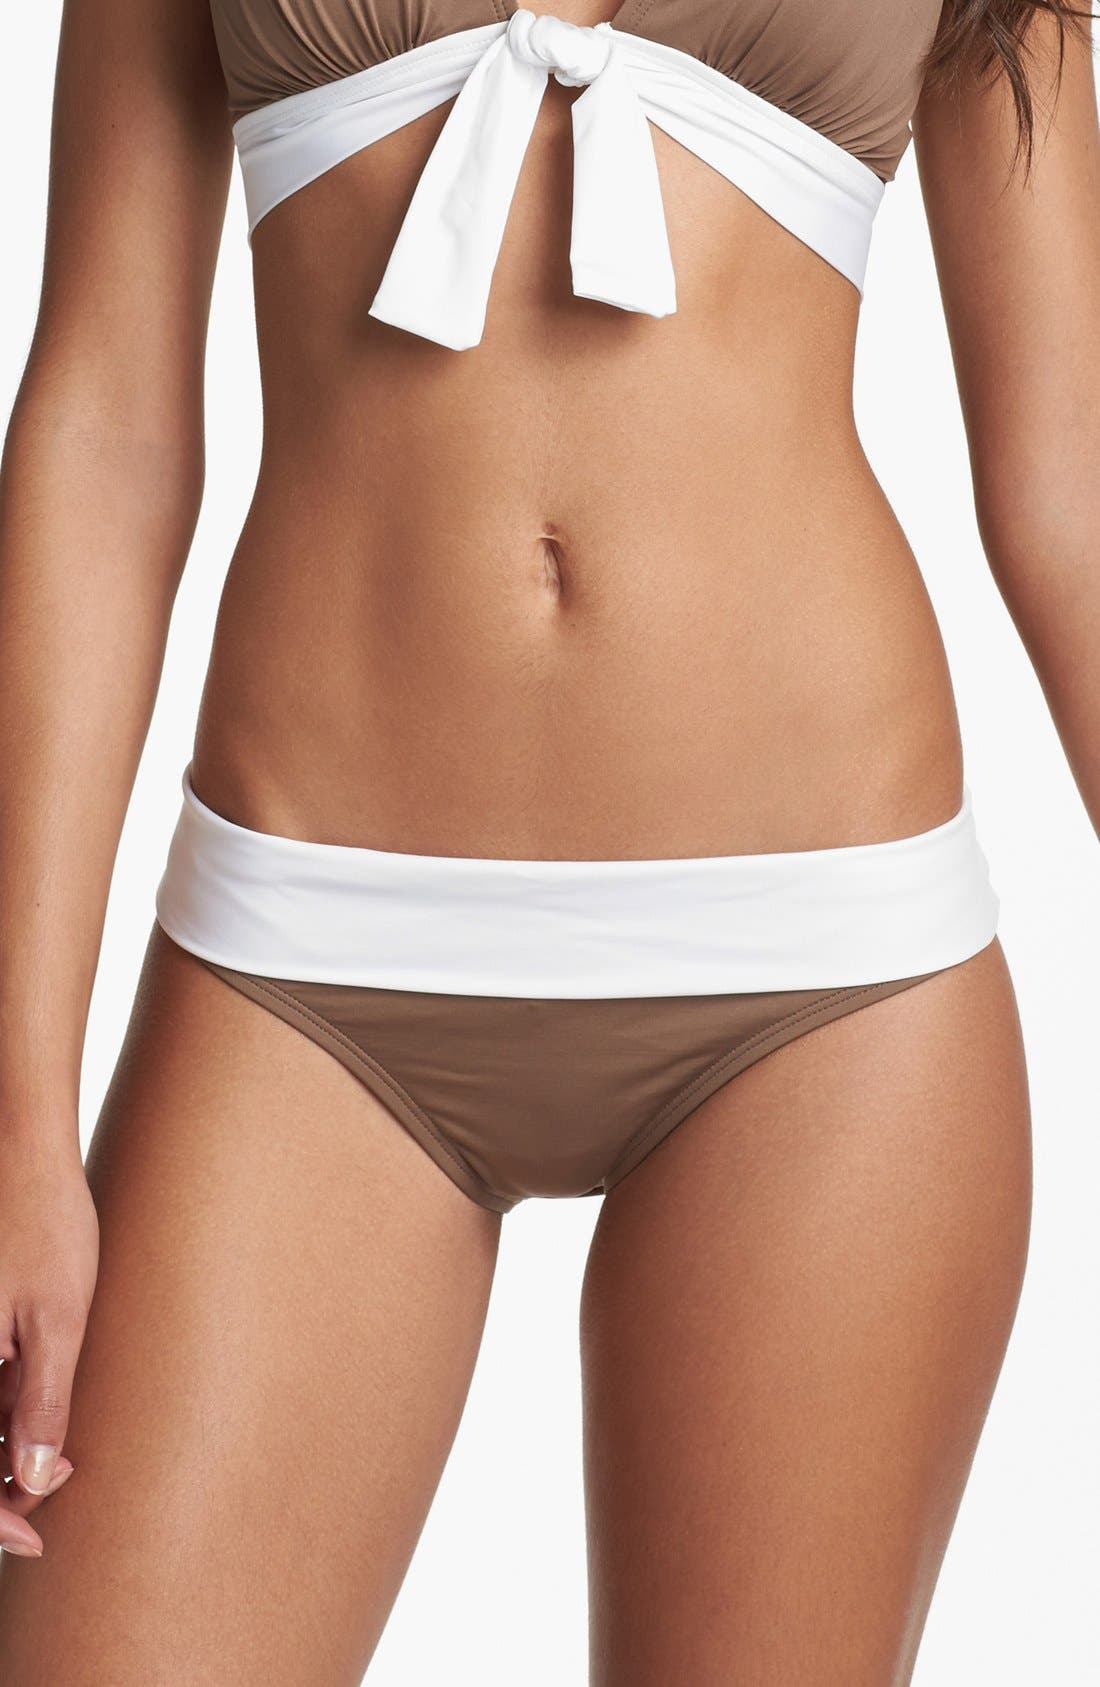 Alternate Image 1 Selected - Tommy Bahama 'Deck Piping' Foldover Bikini Bottoms